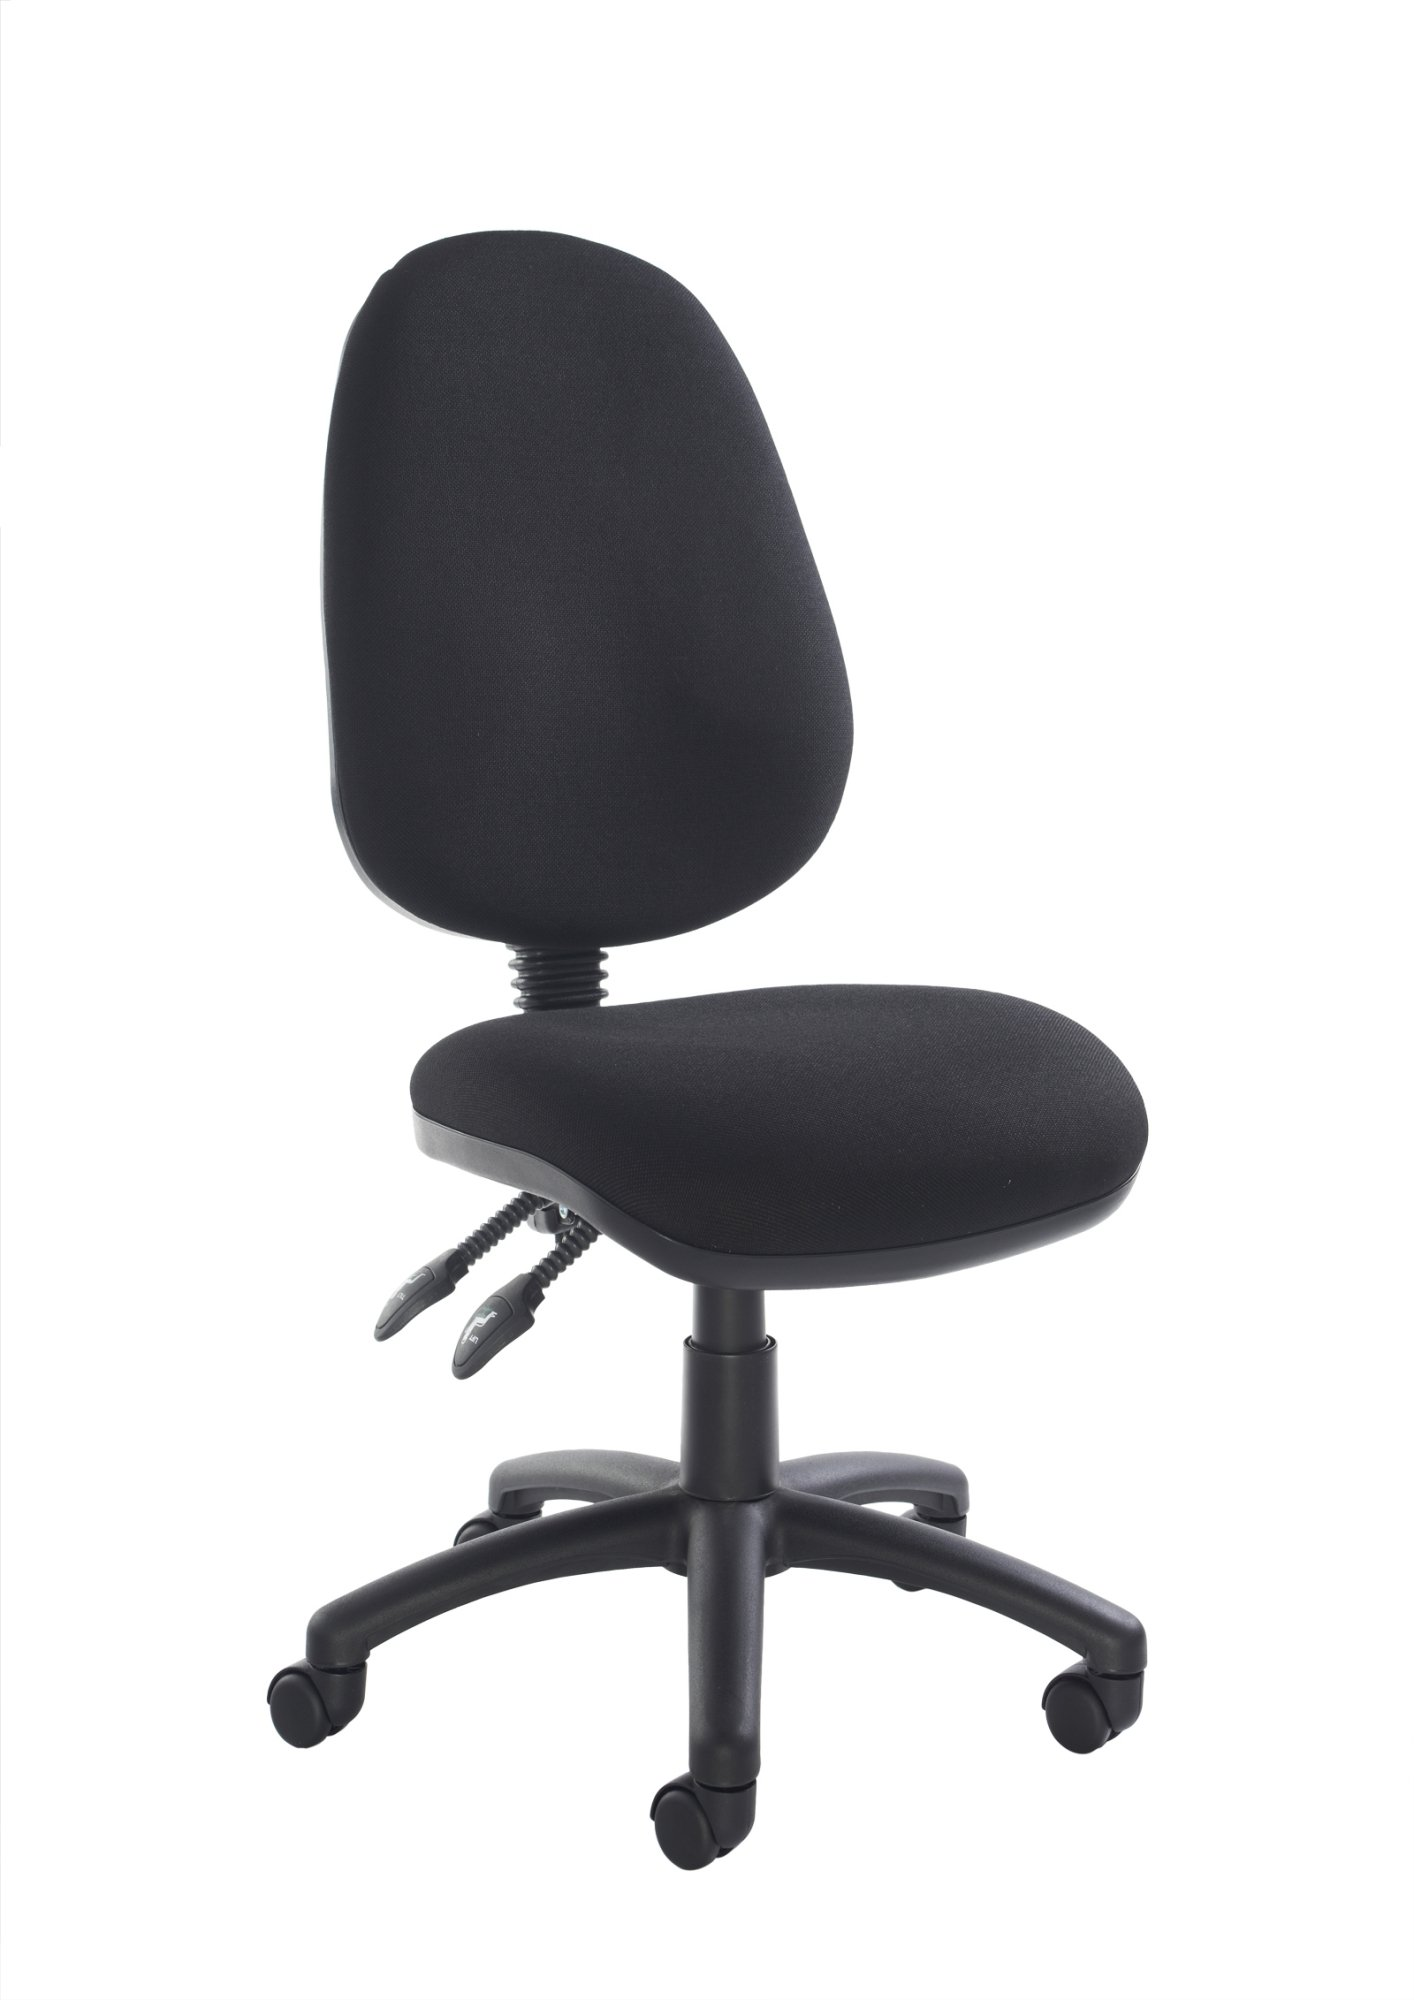 ergonomic chair levers party chairs and tables for rent vantage 100 operator with no arms